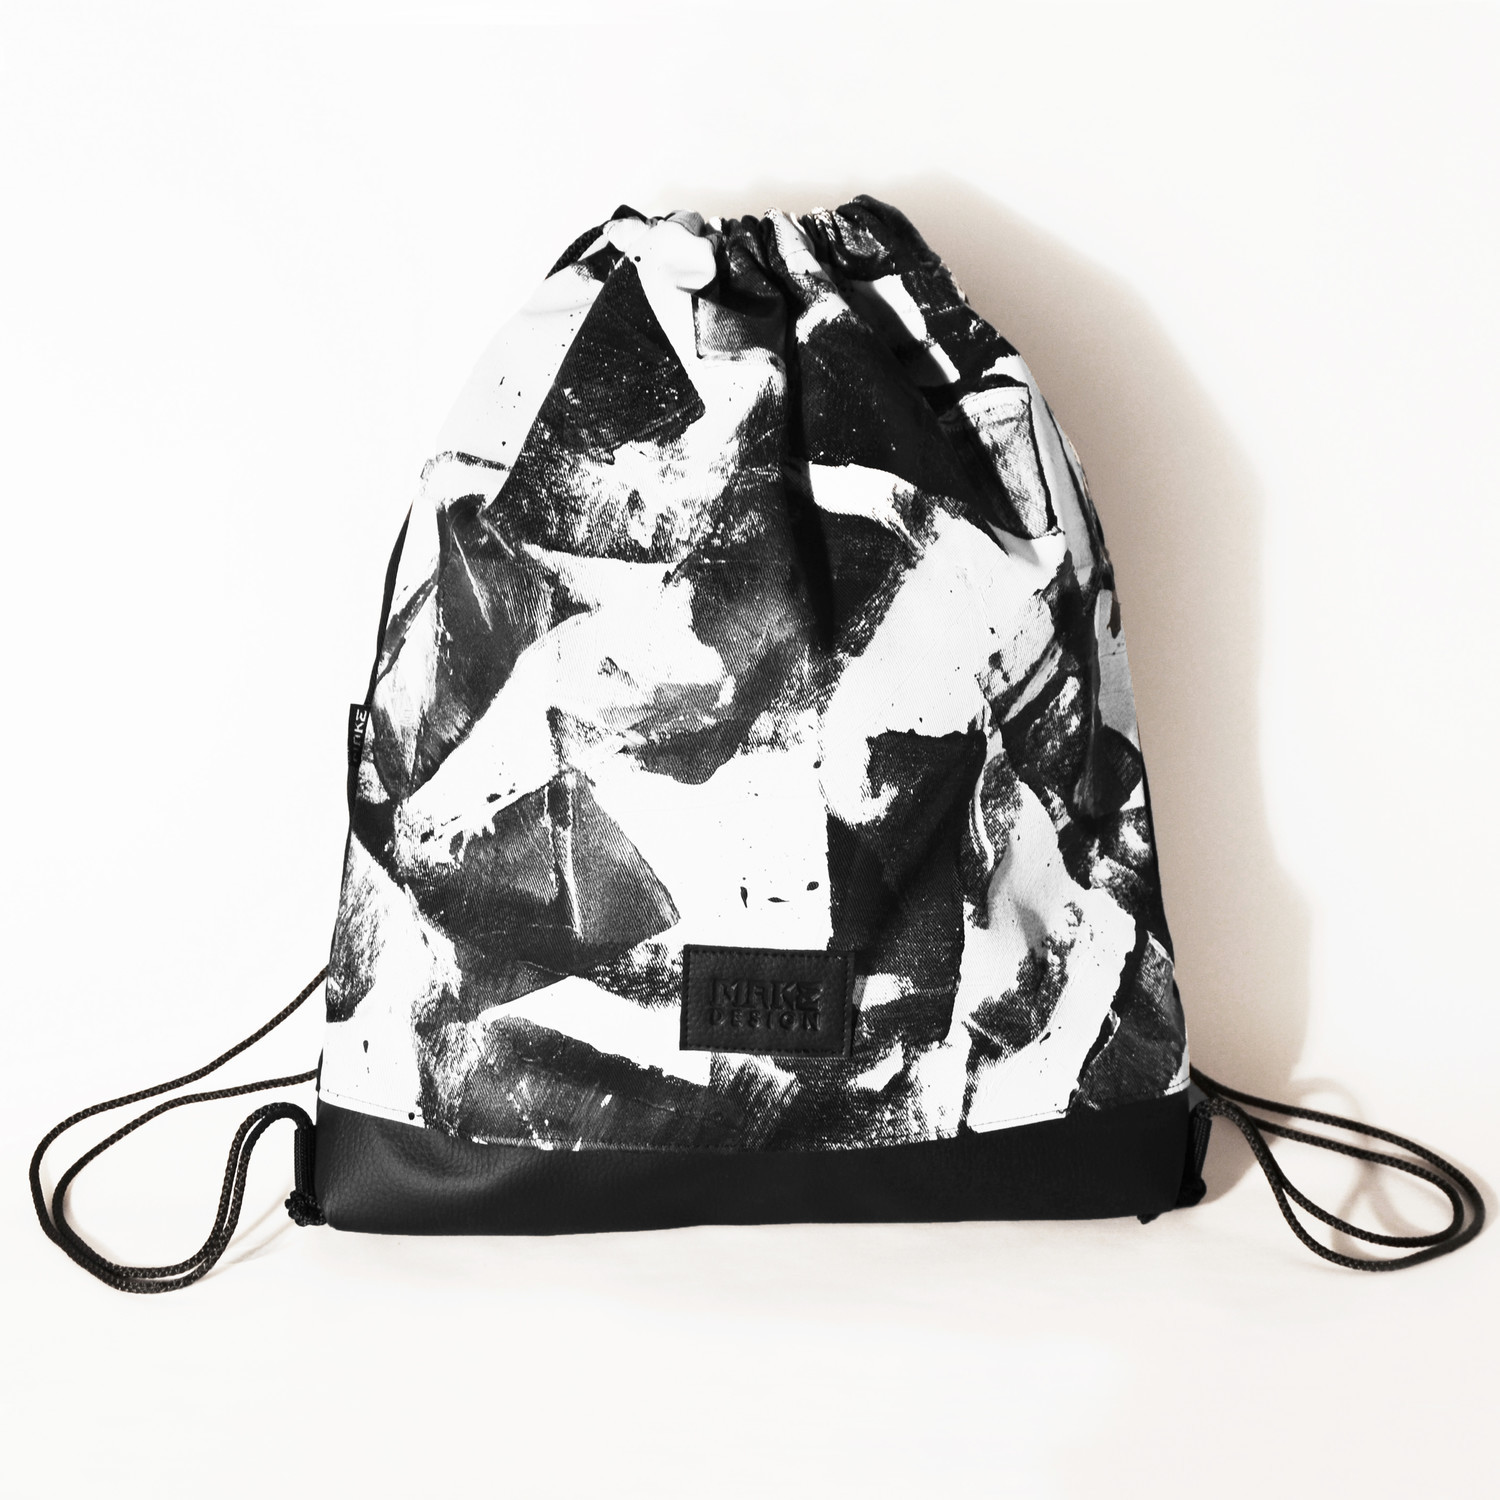 Hand painted bags/ gym bags - 1 by MAKE design